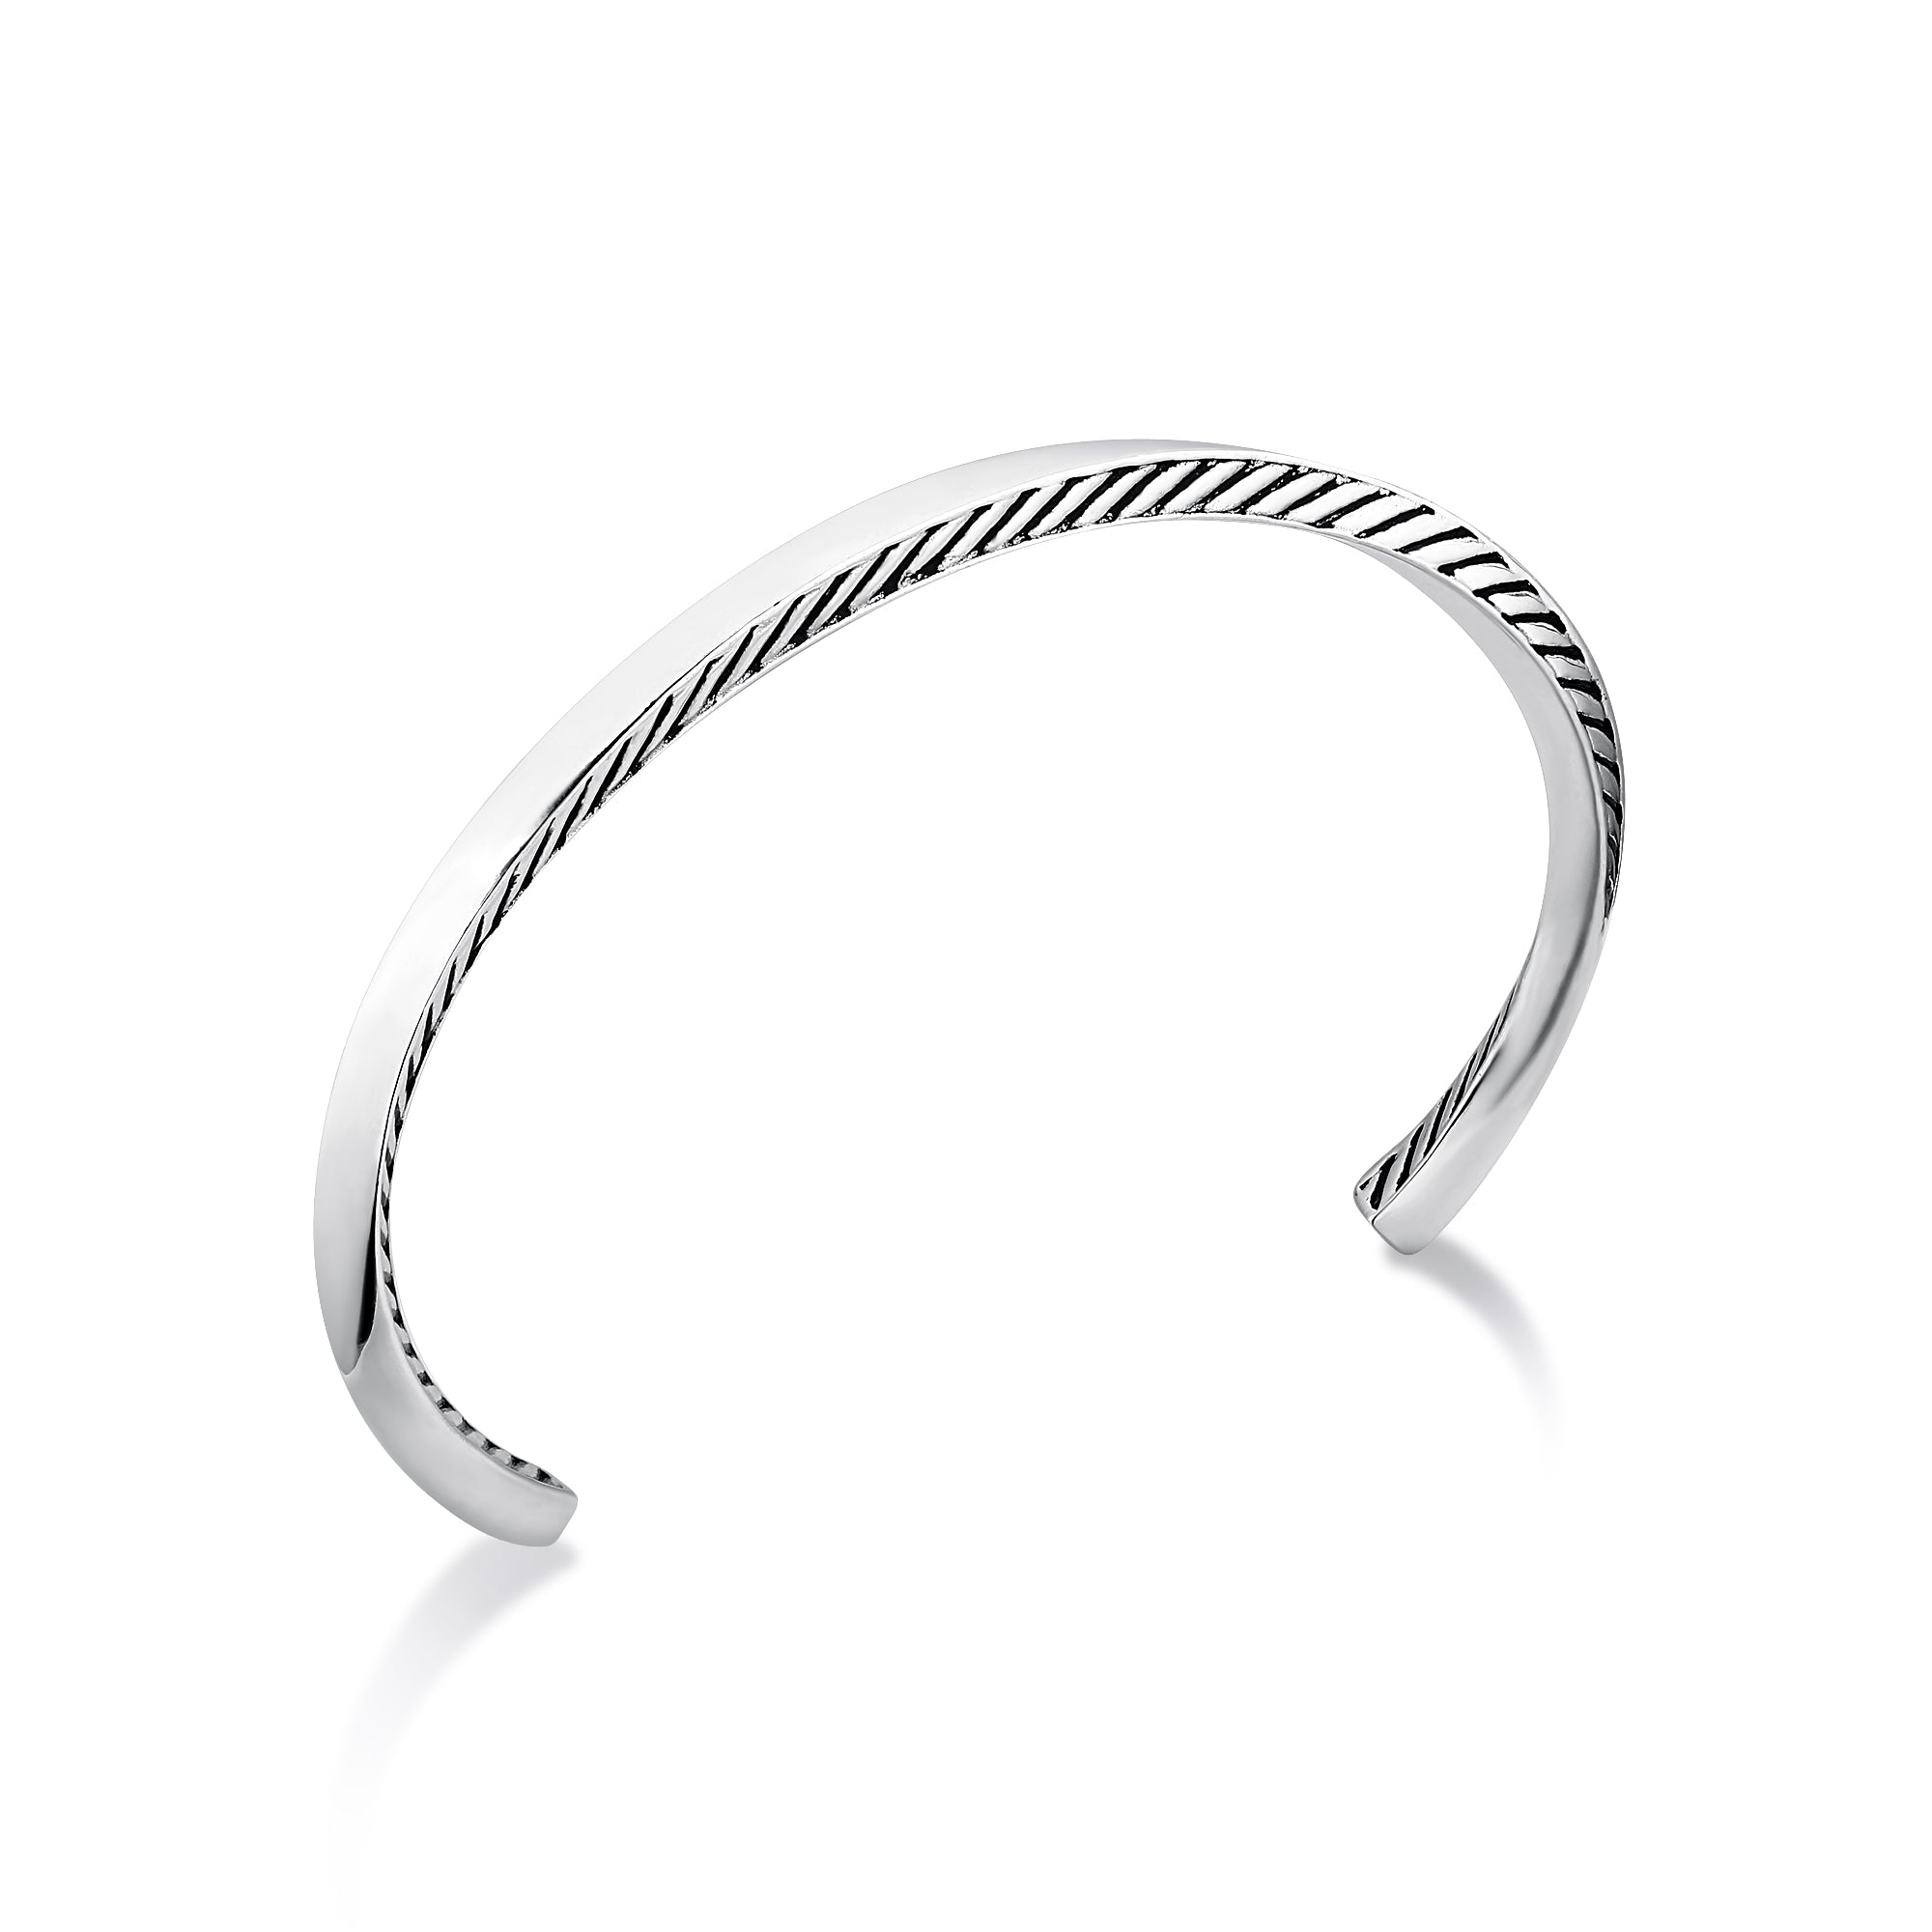 Rhodium Plated Narrow Cuff Bracelet with Etching